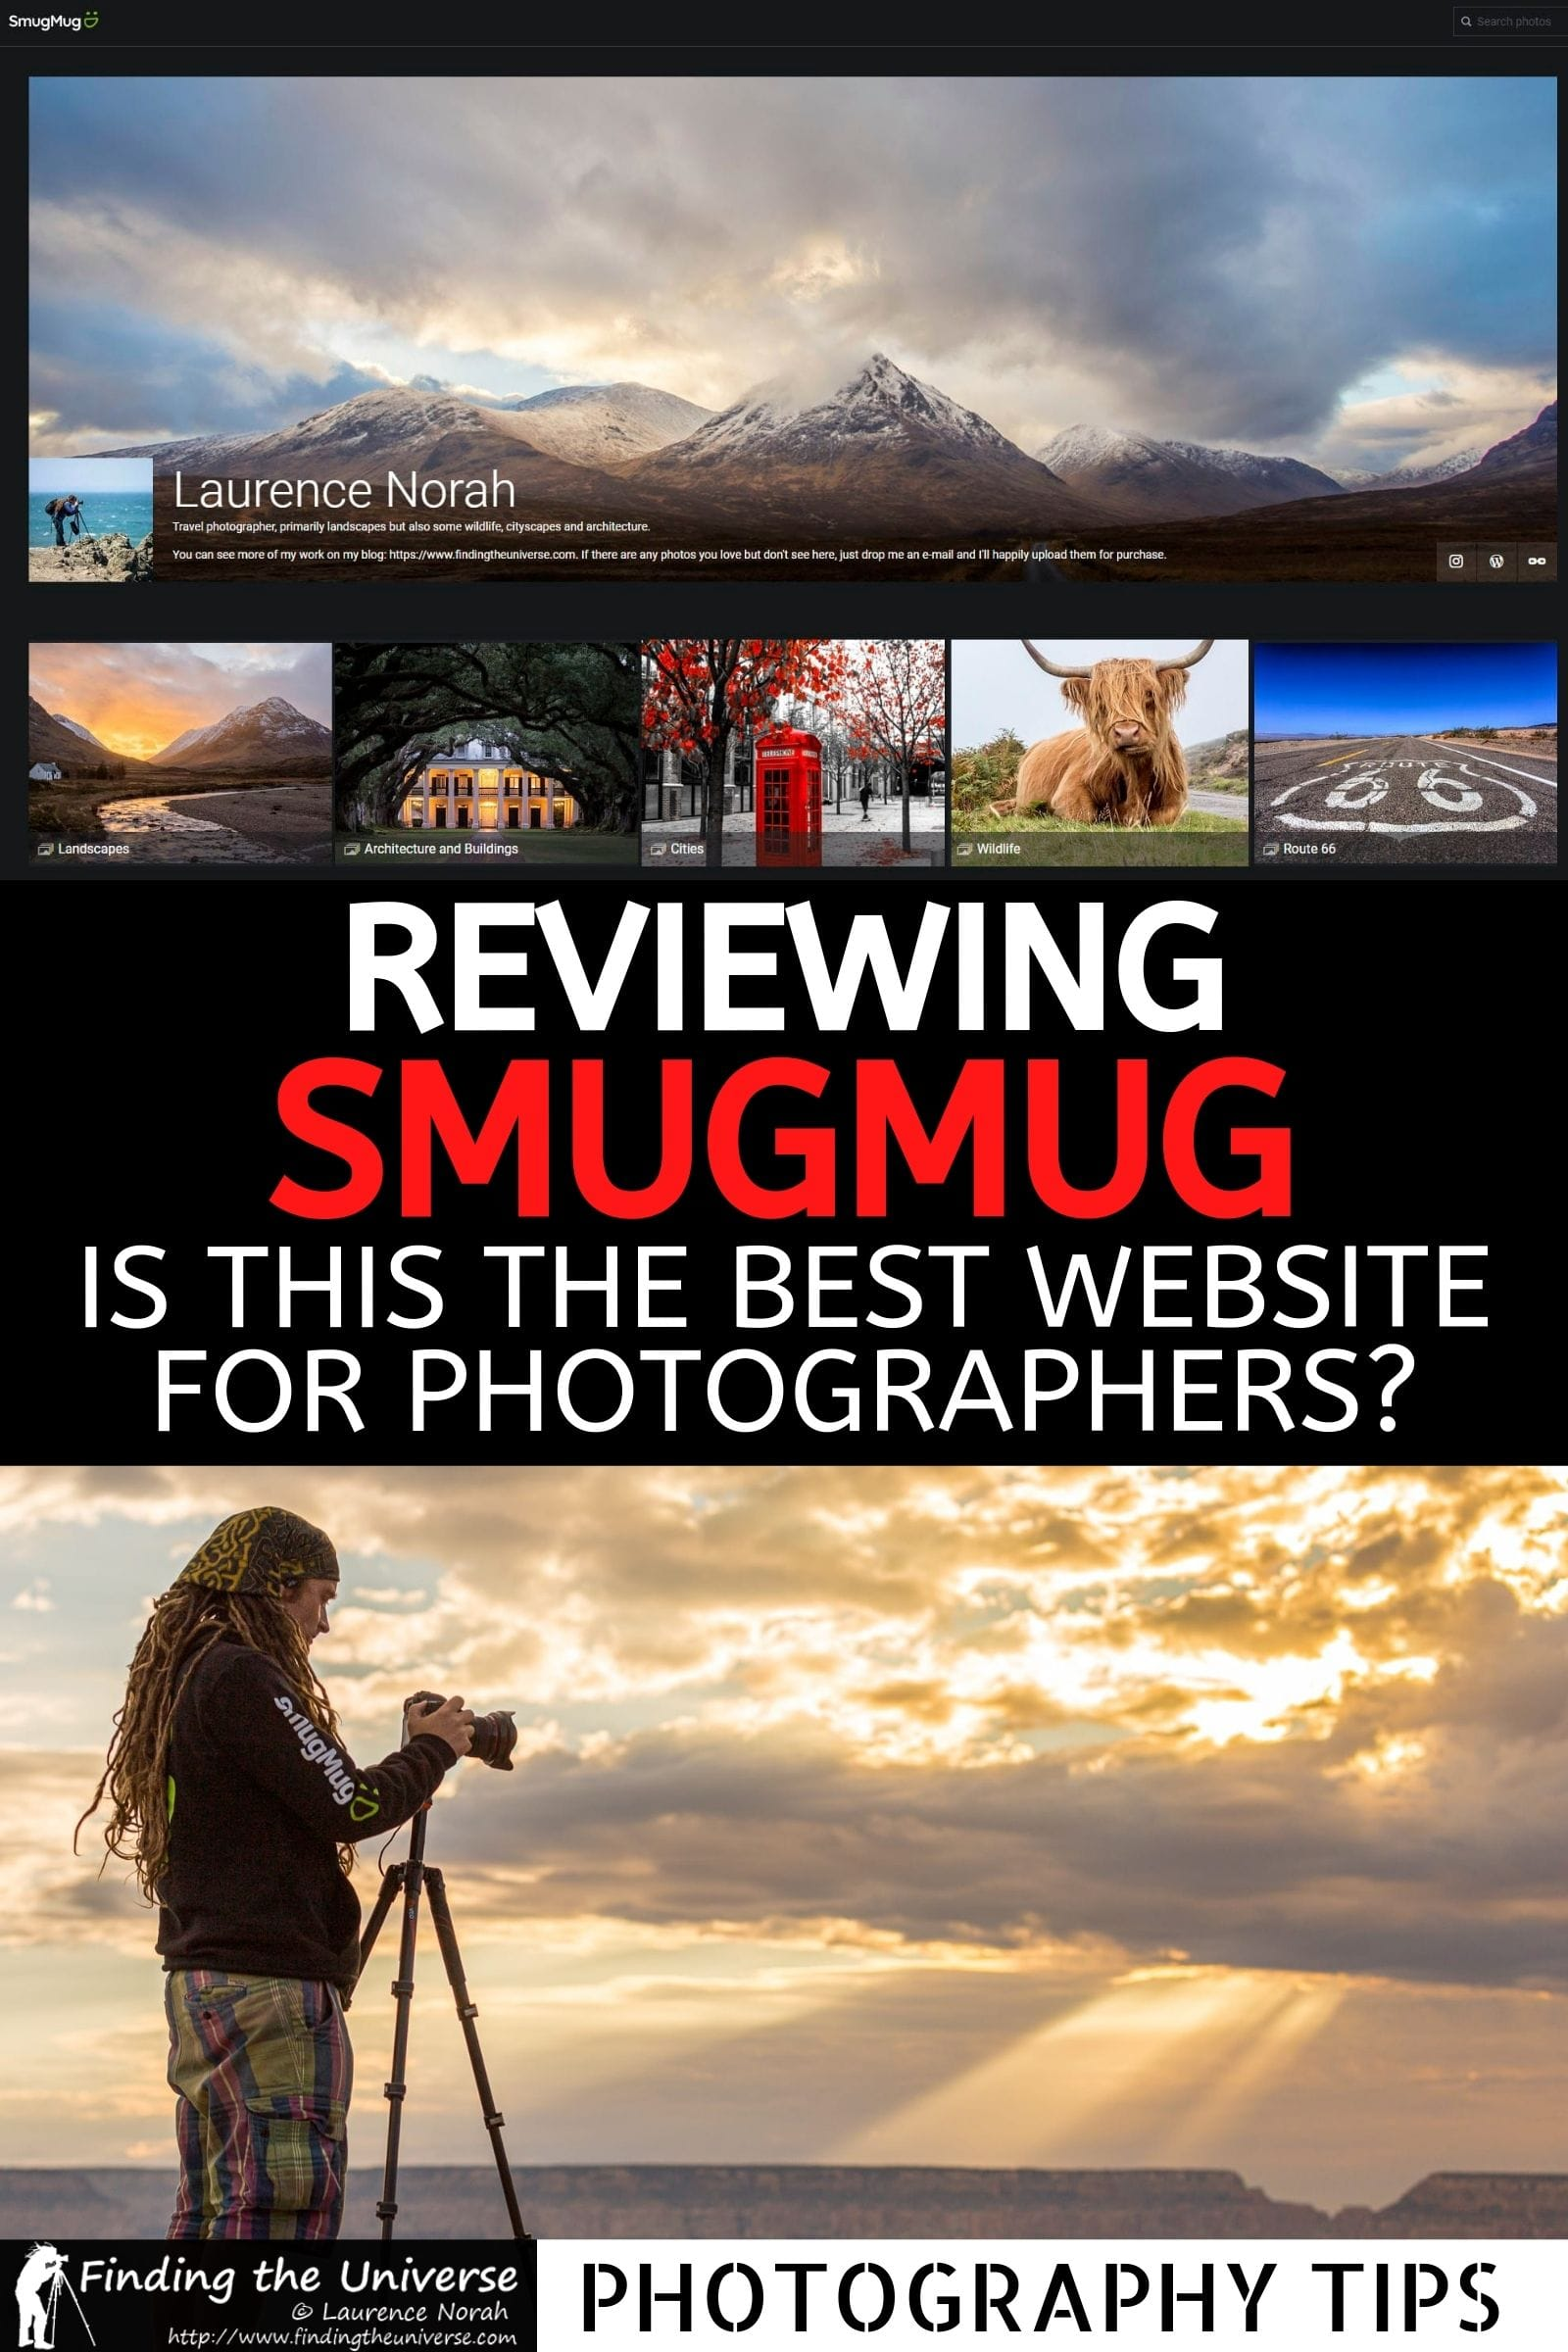 Want a website to host + sell your images? This SmugMug review covers everything you need to know, and includes a SmugMug discount code!